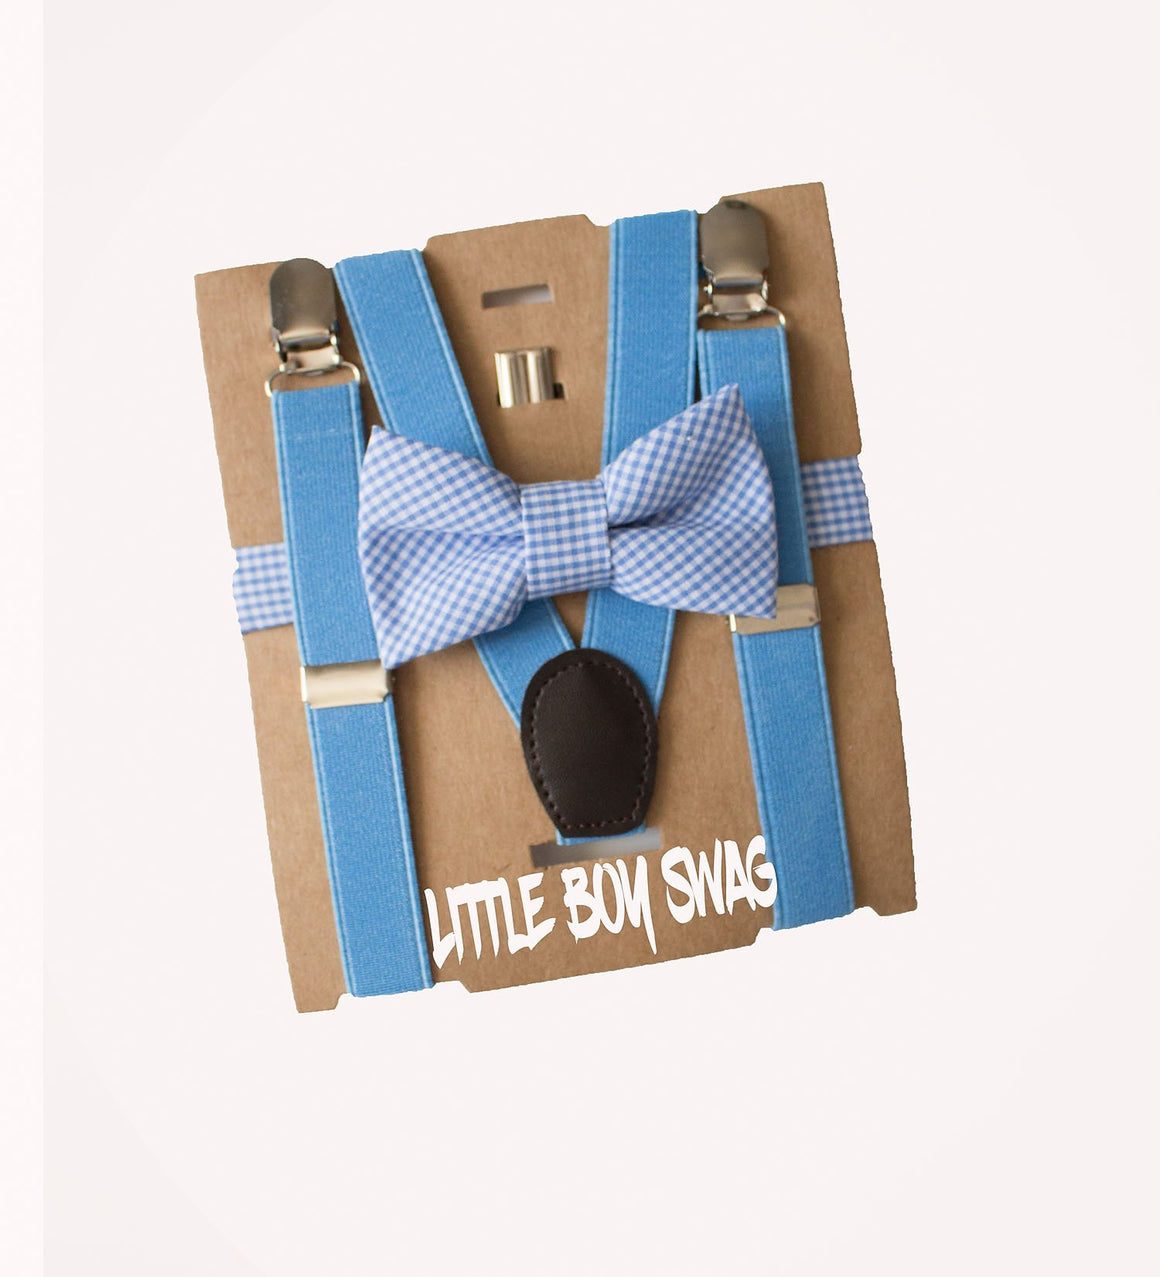 Baby Blue Bow Tie & Suspender for Wedding Outfits, Ring Bearer, Boys Birthday Outfit, Baby Shower Gift, Easter, New Mom Gift